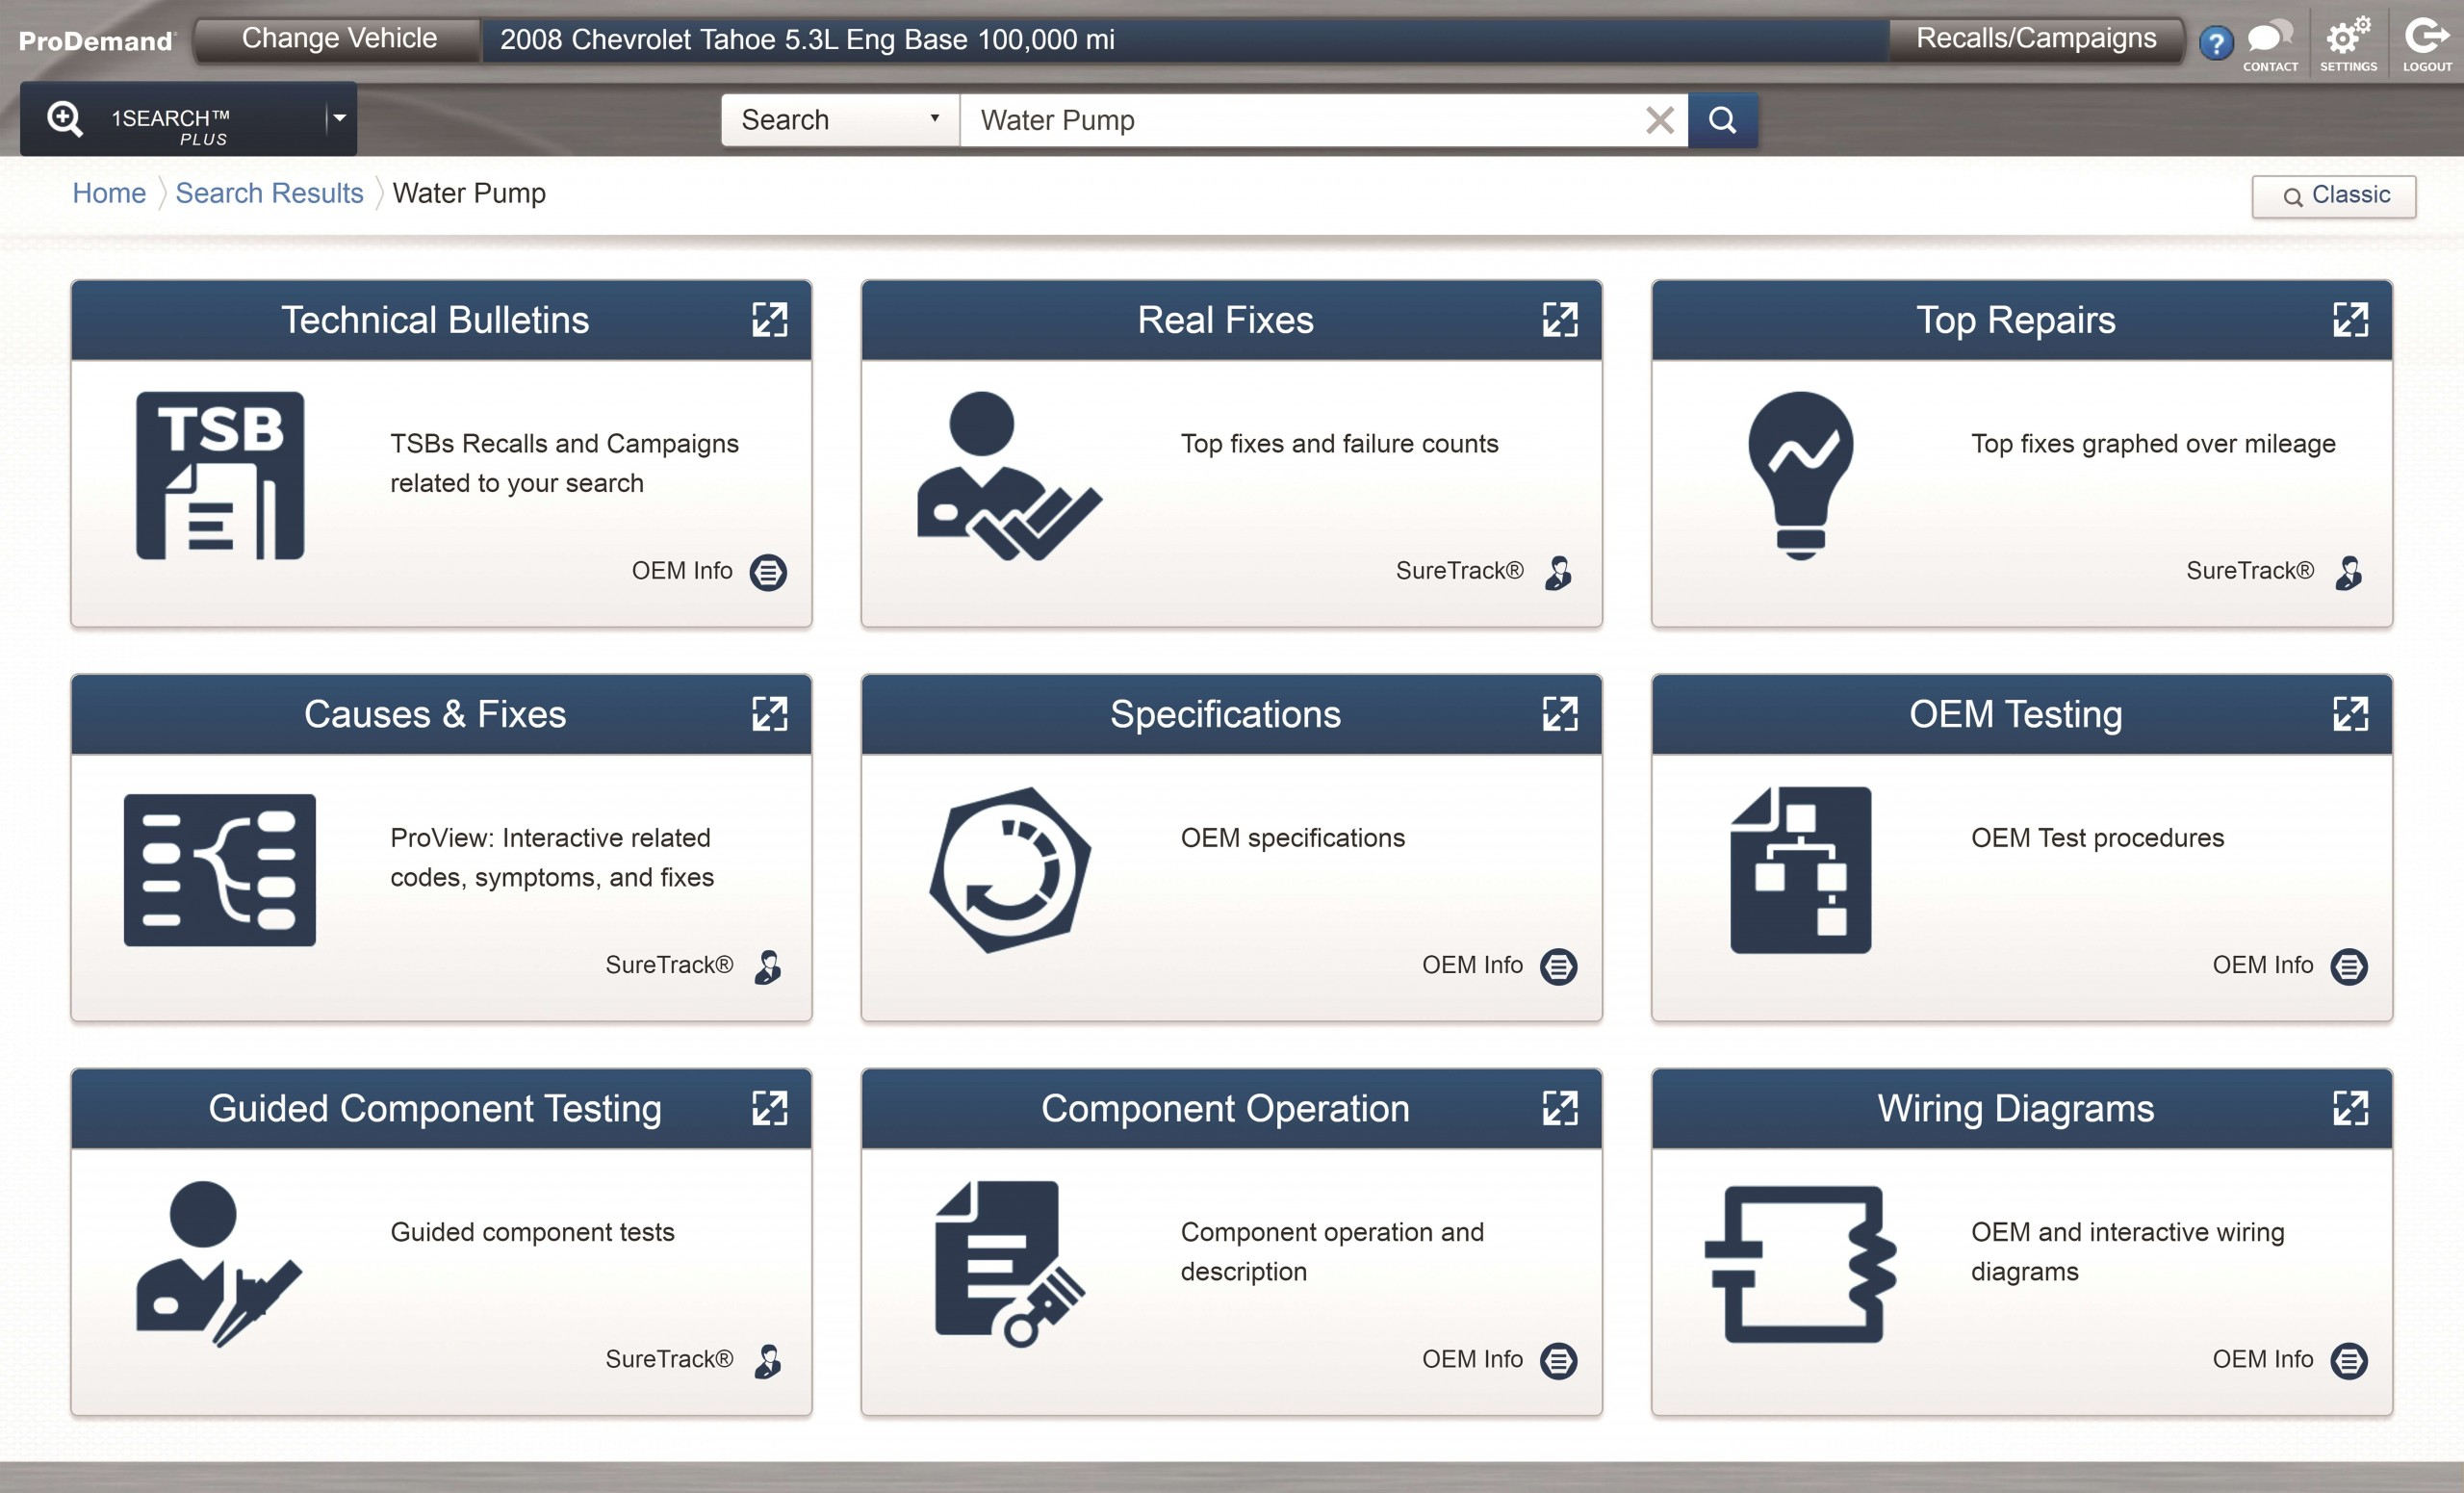 Prodemand 1search Plus Dashboard Higher Res